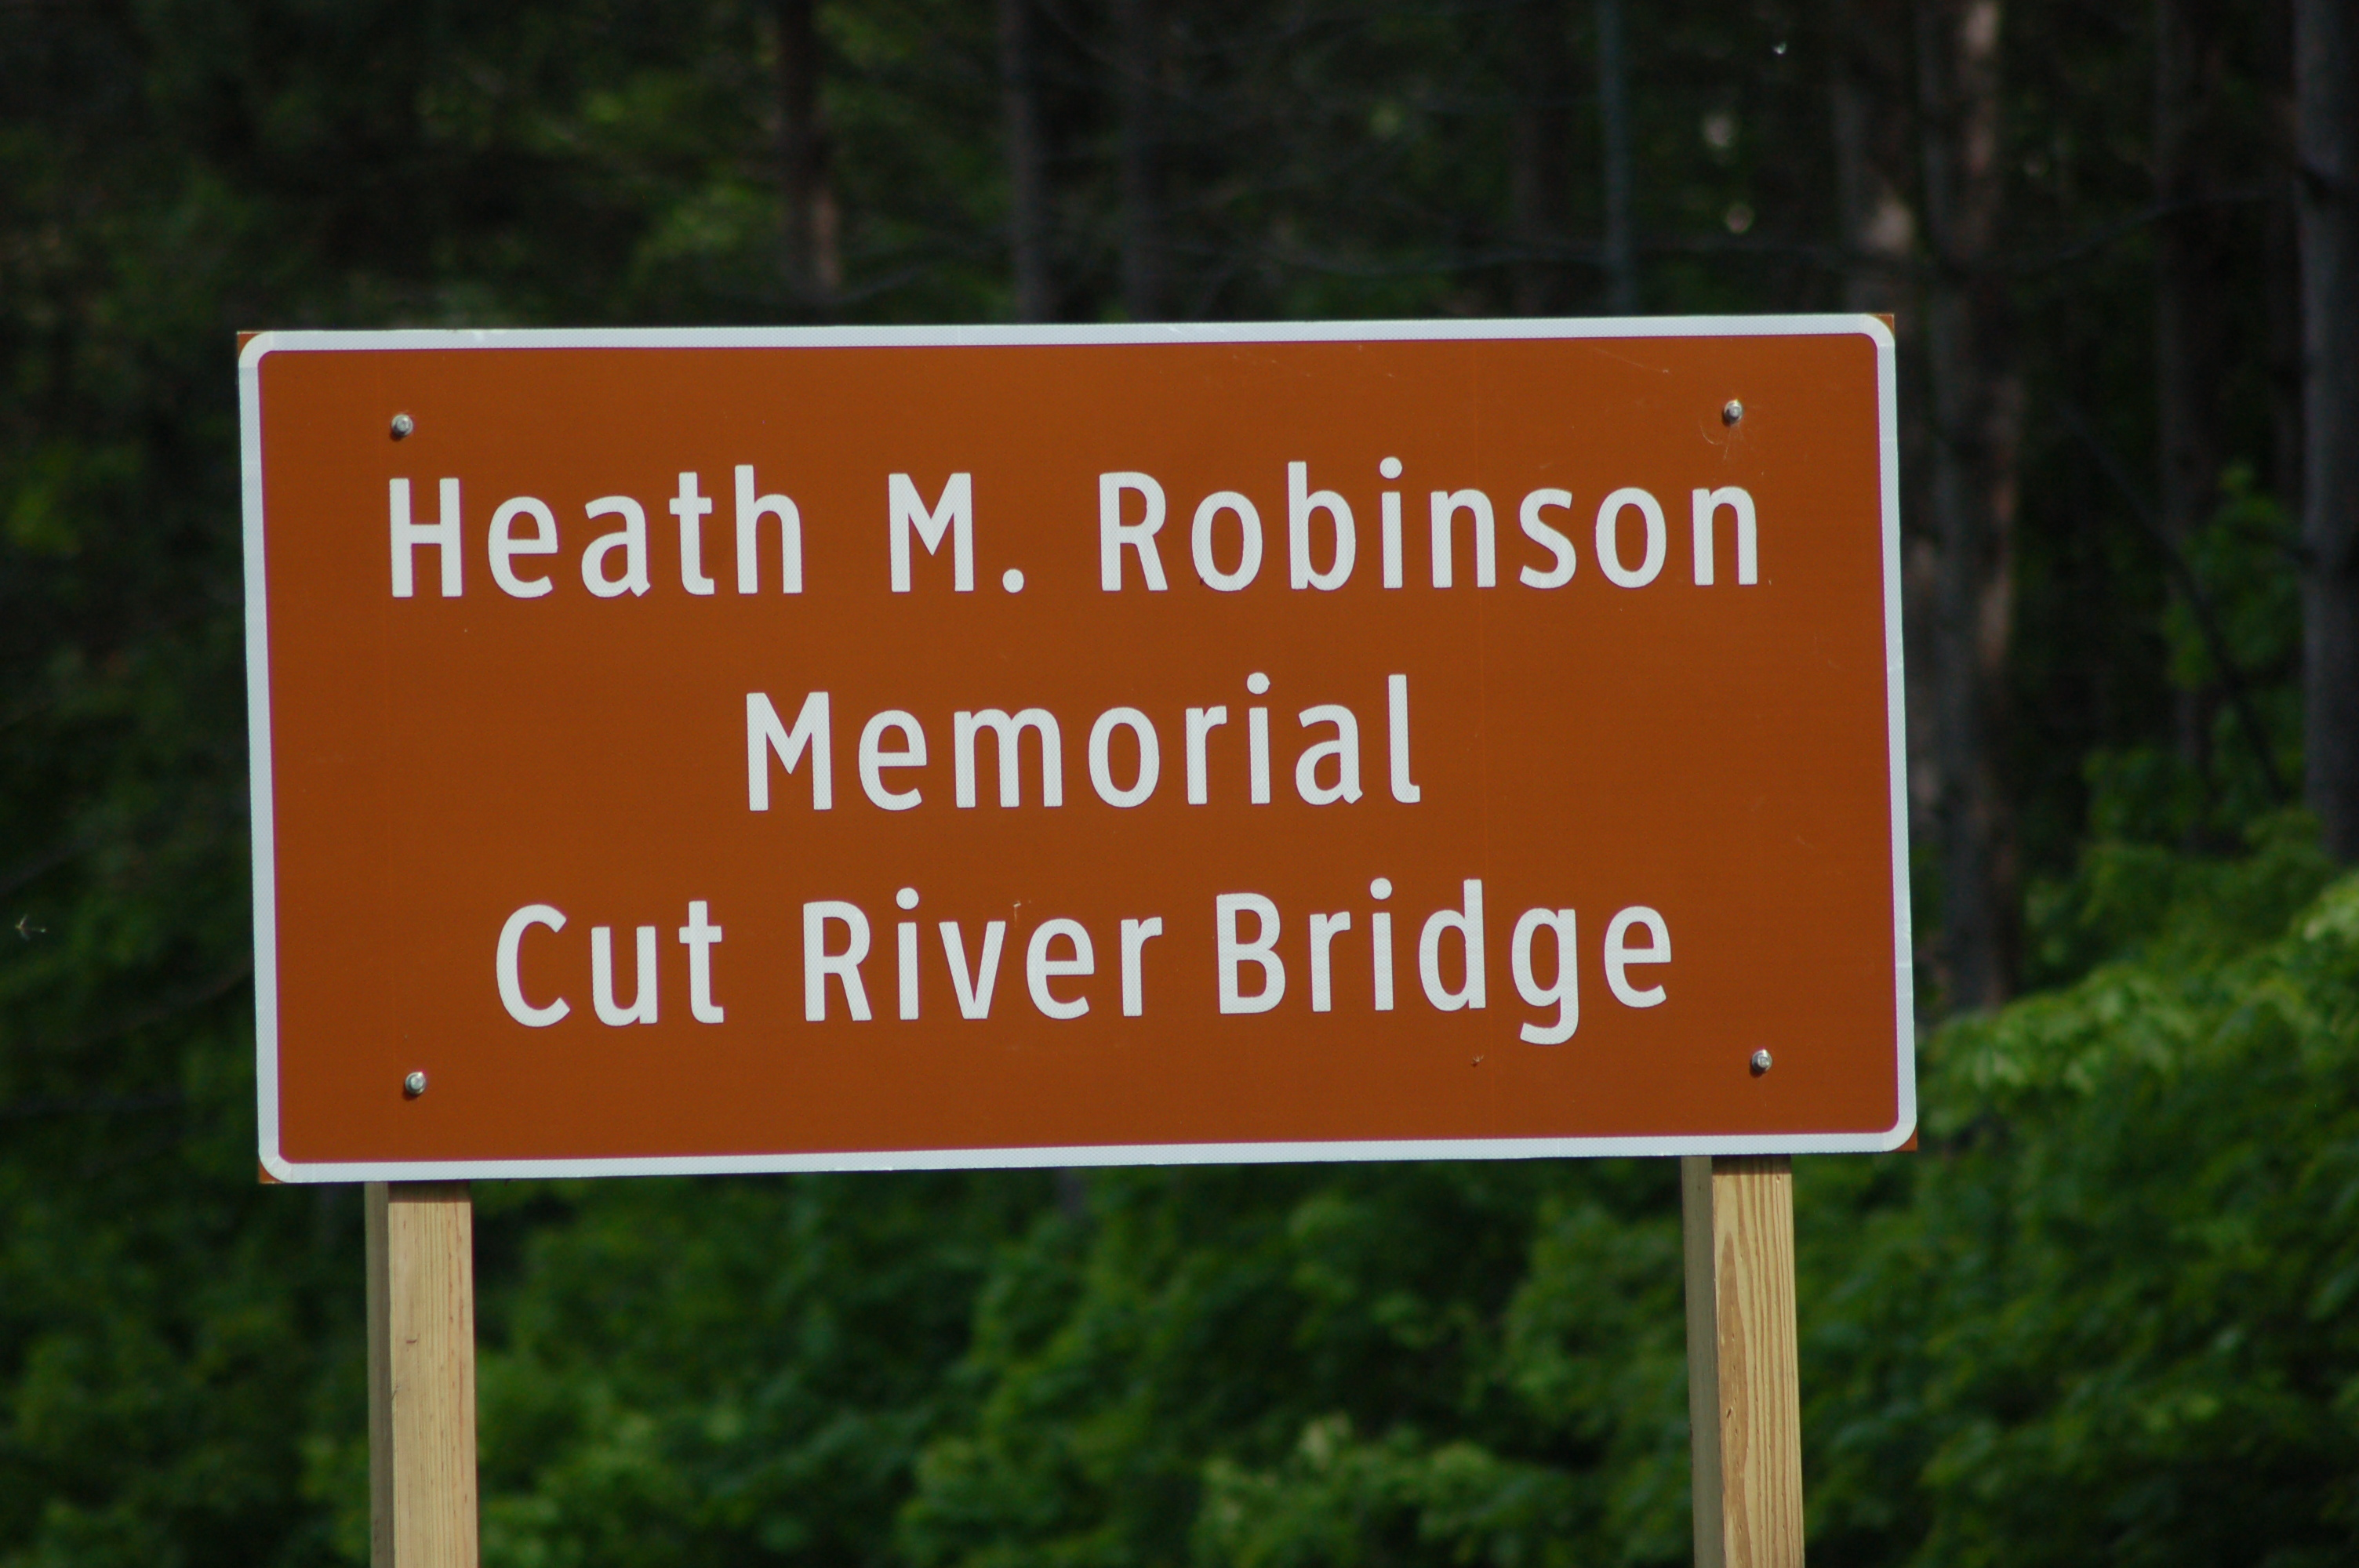 Heath M. Robinson Cut River Memorial Bridge